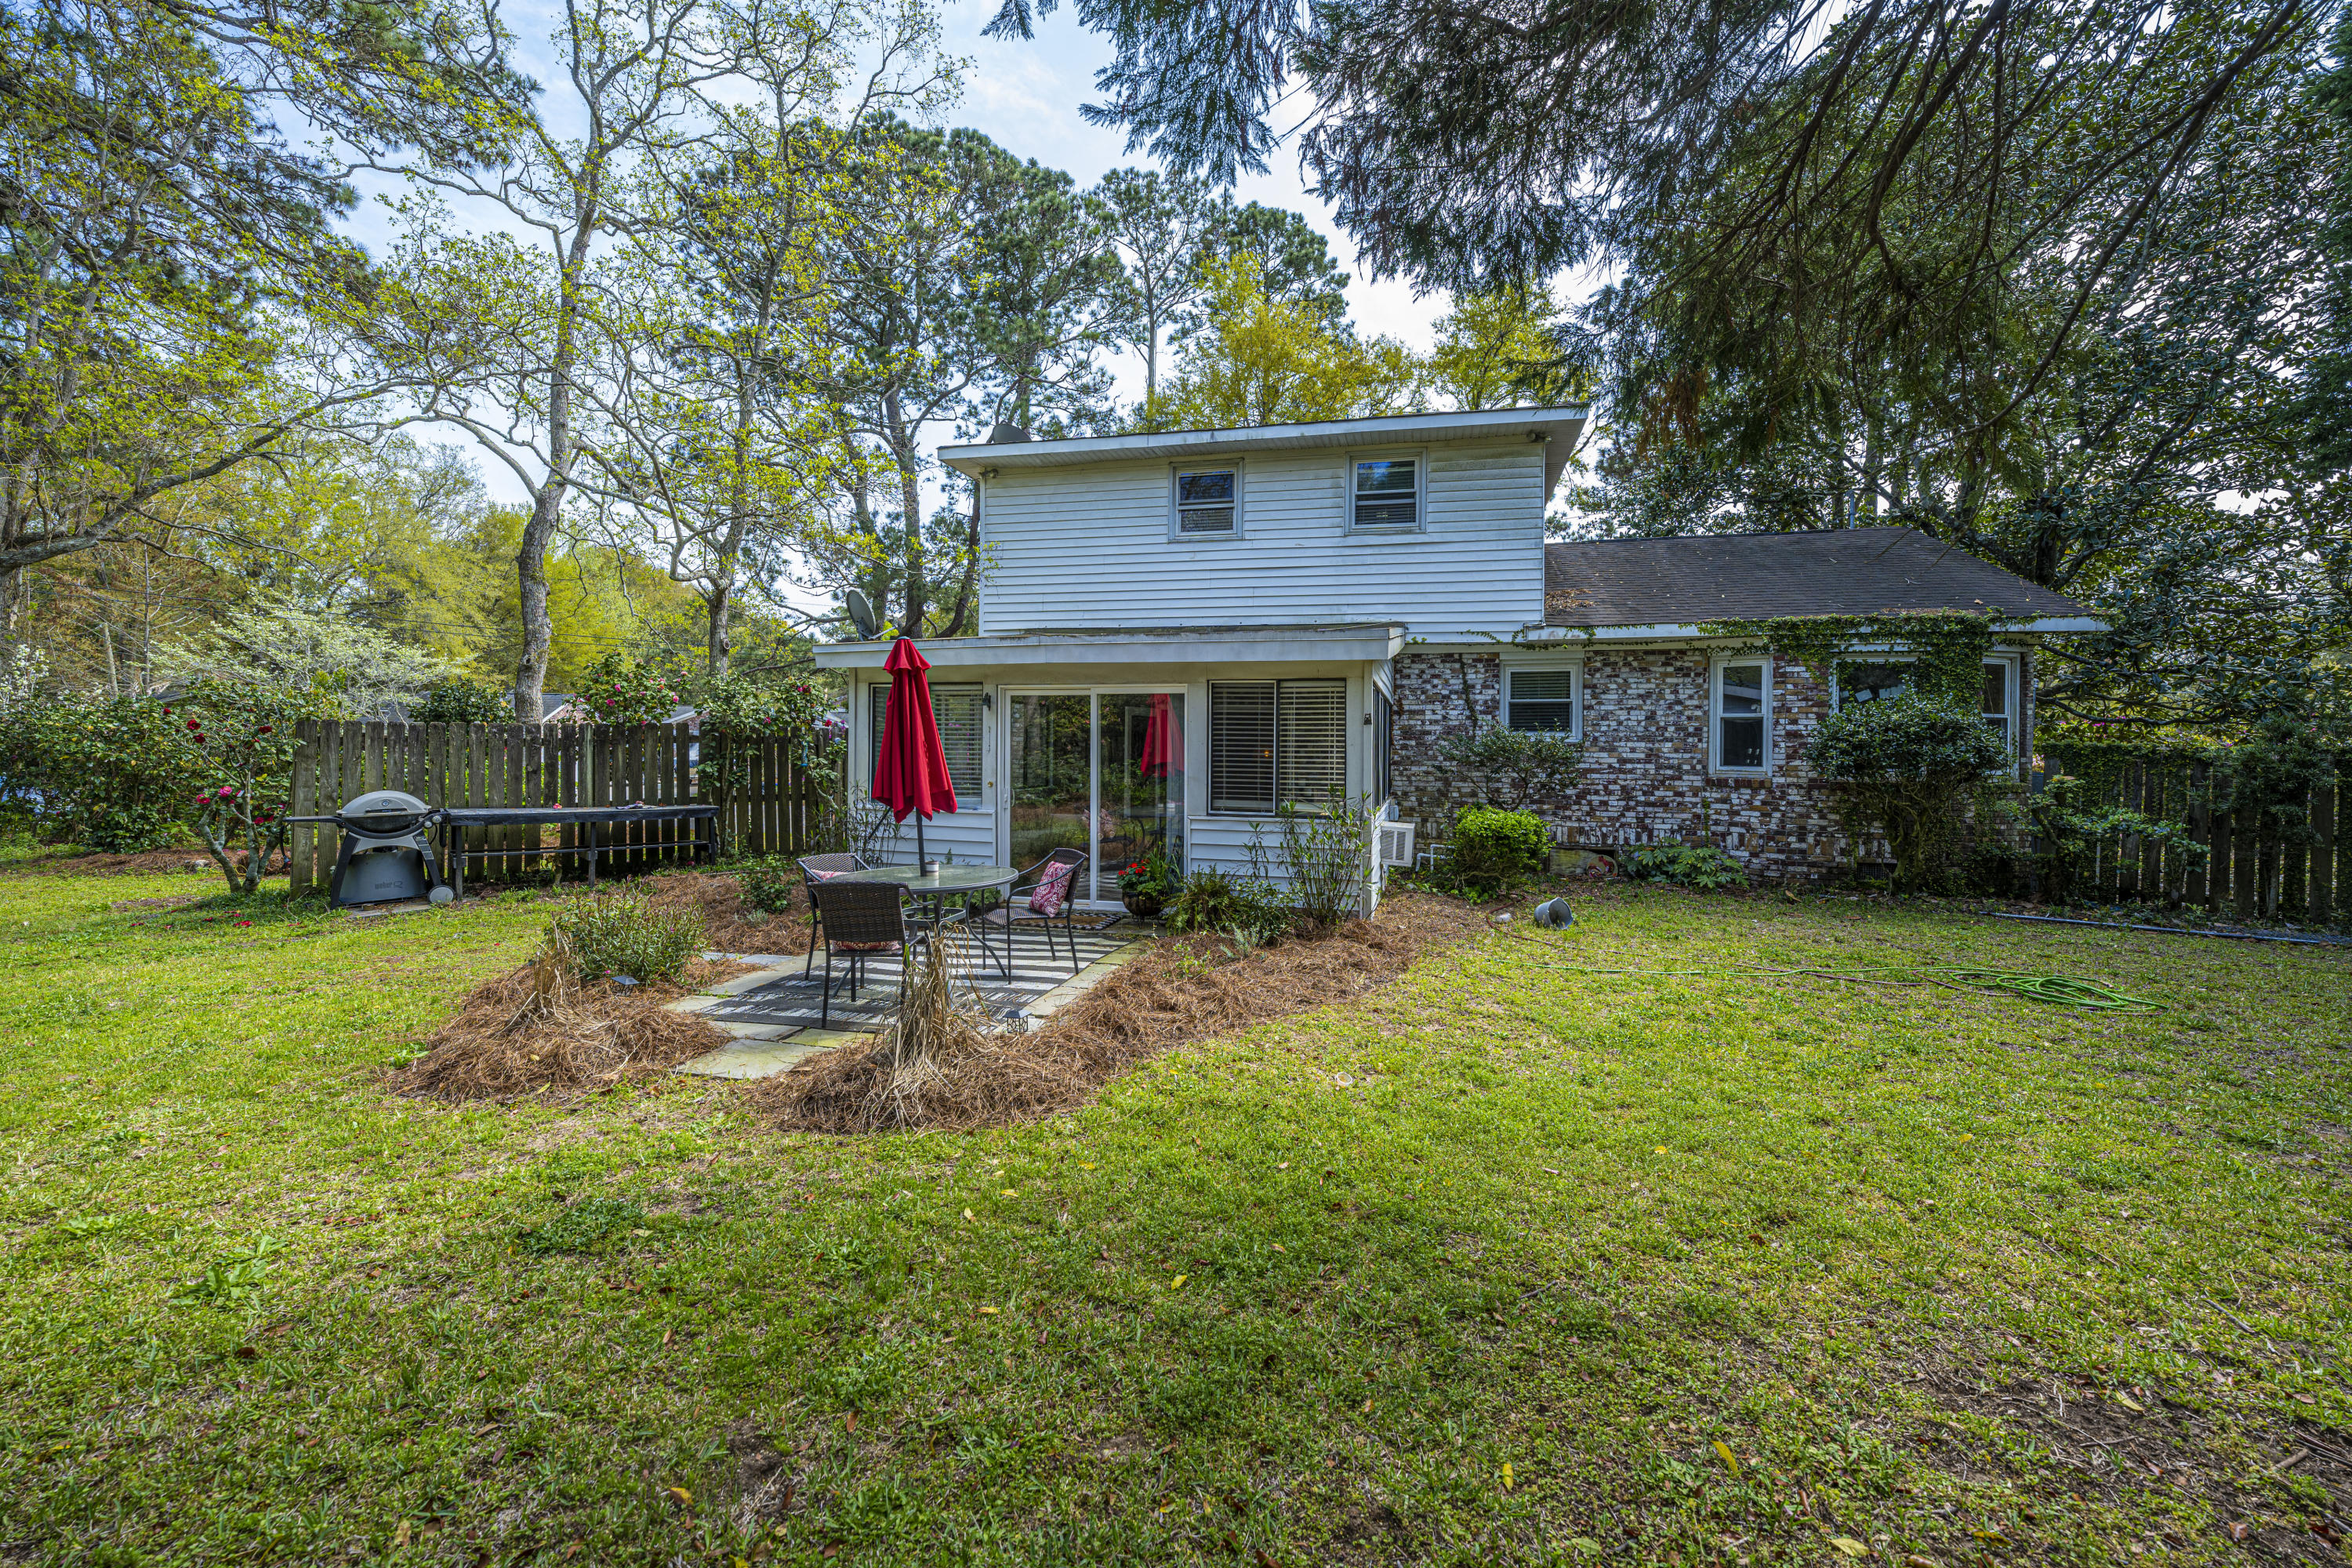 Stiles Point Homes For Sale - 775 Sparrow, Charleston, SC - 38